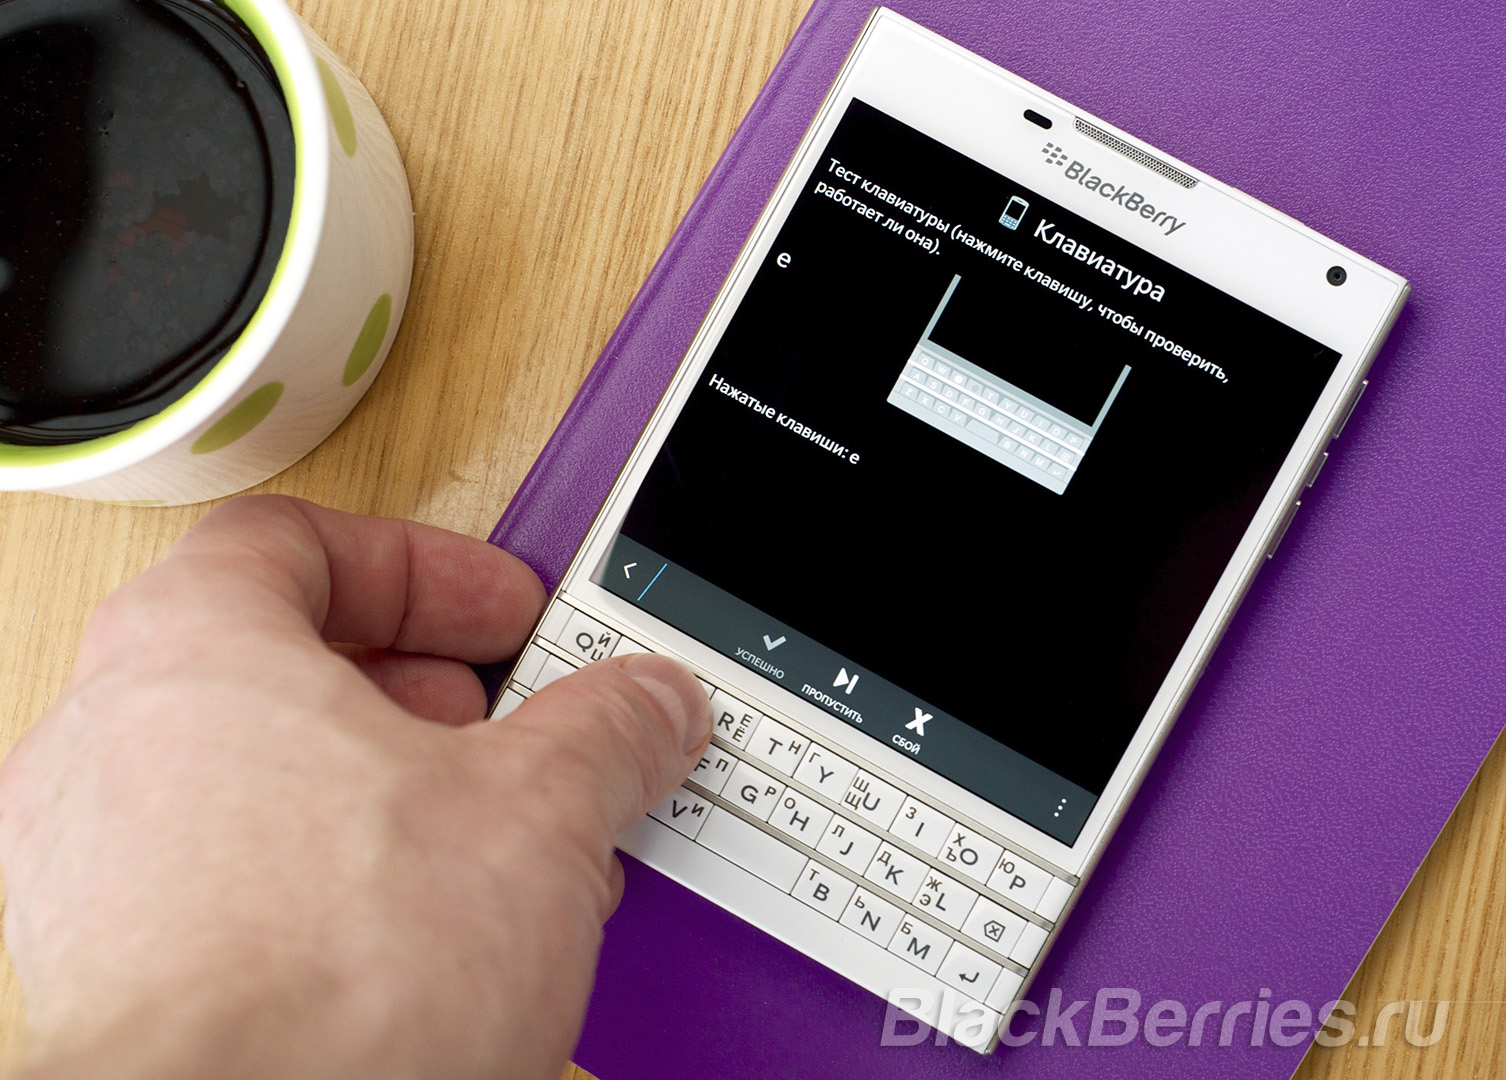 BlackBerry-Passport-Apps-31-07-06